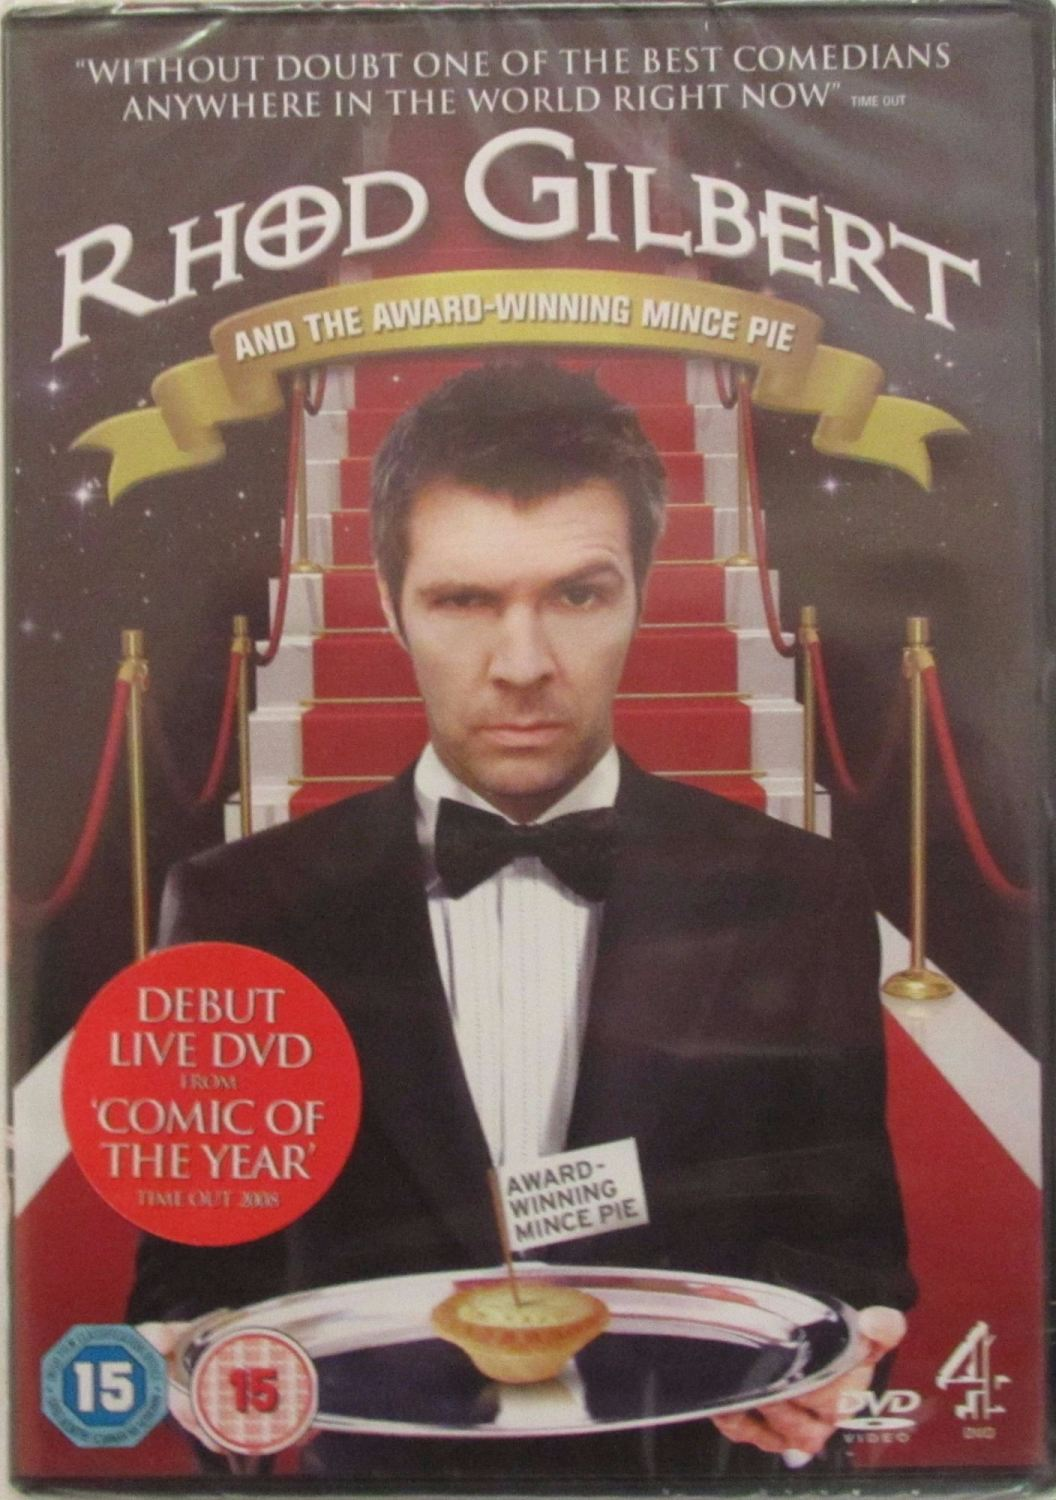 Rhod Gilbert And The Award-Winning Mince Pie    2009 DVD Region 2